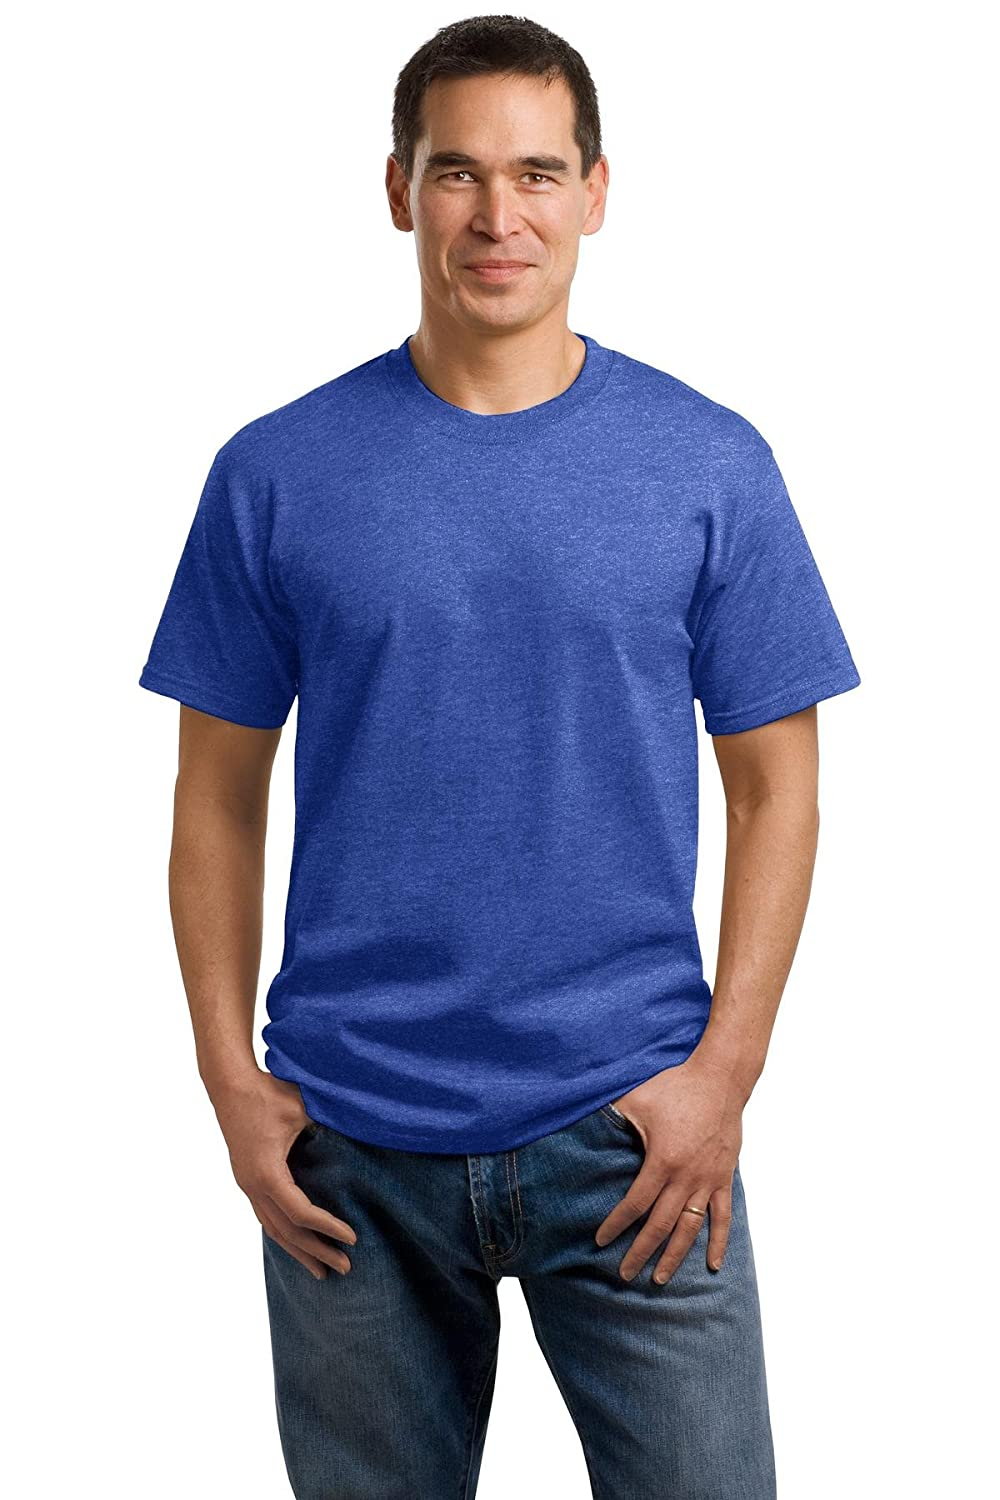 Port /& Company/® 5.4-oz 100/% Cotton T-Shirt Heather Royal* Small